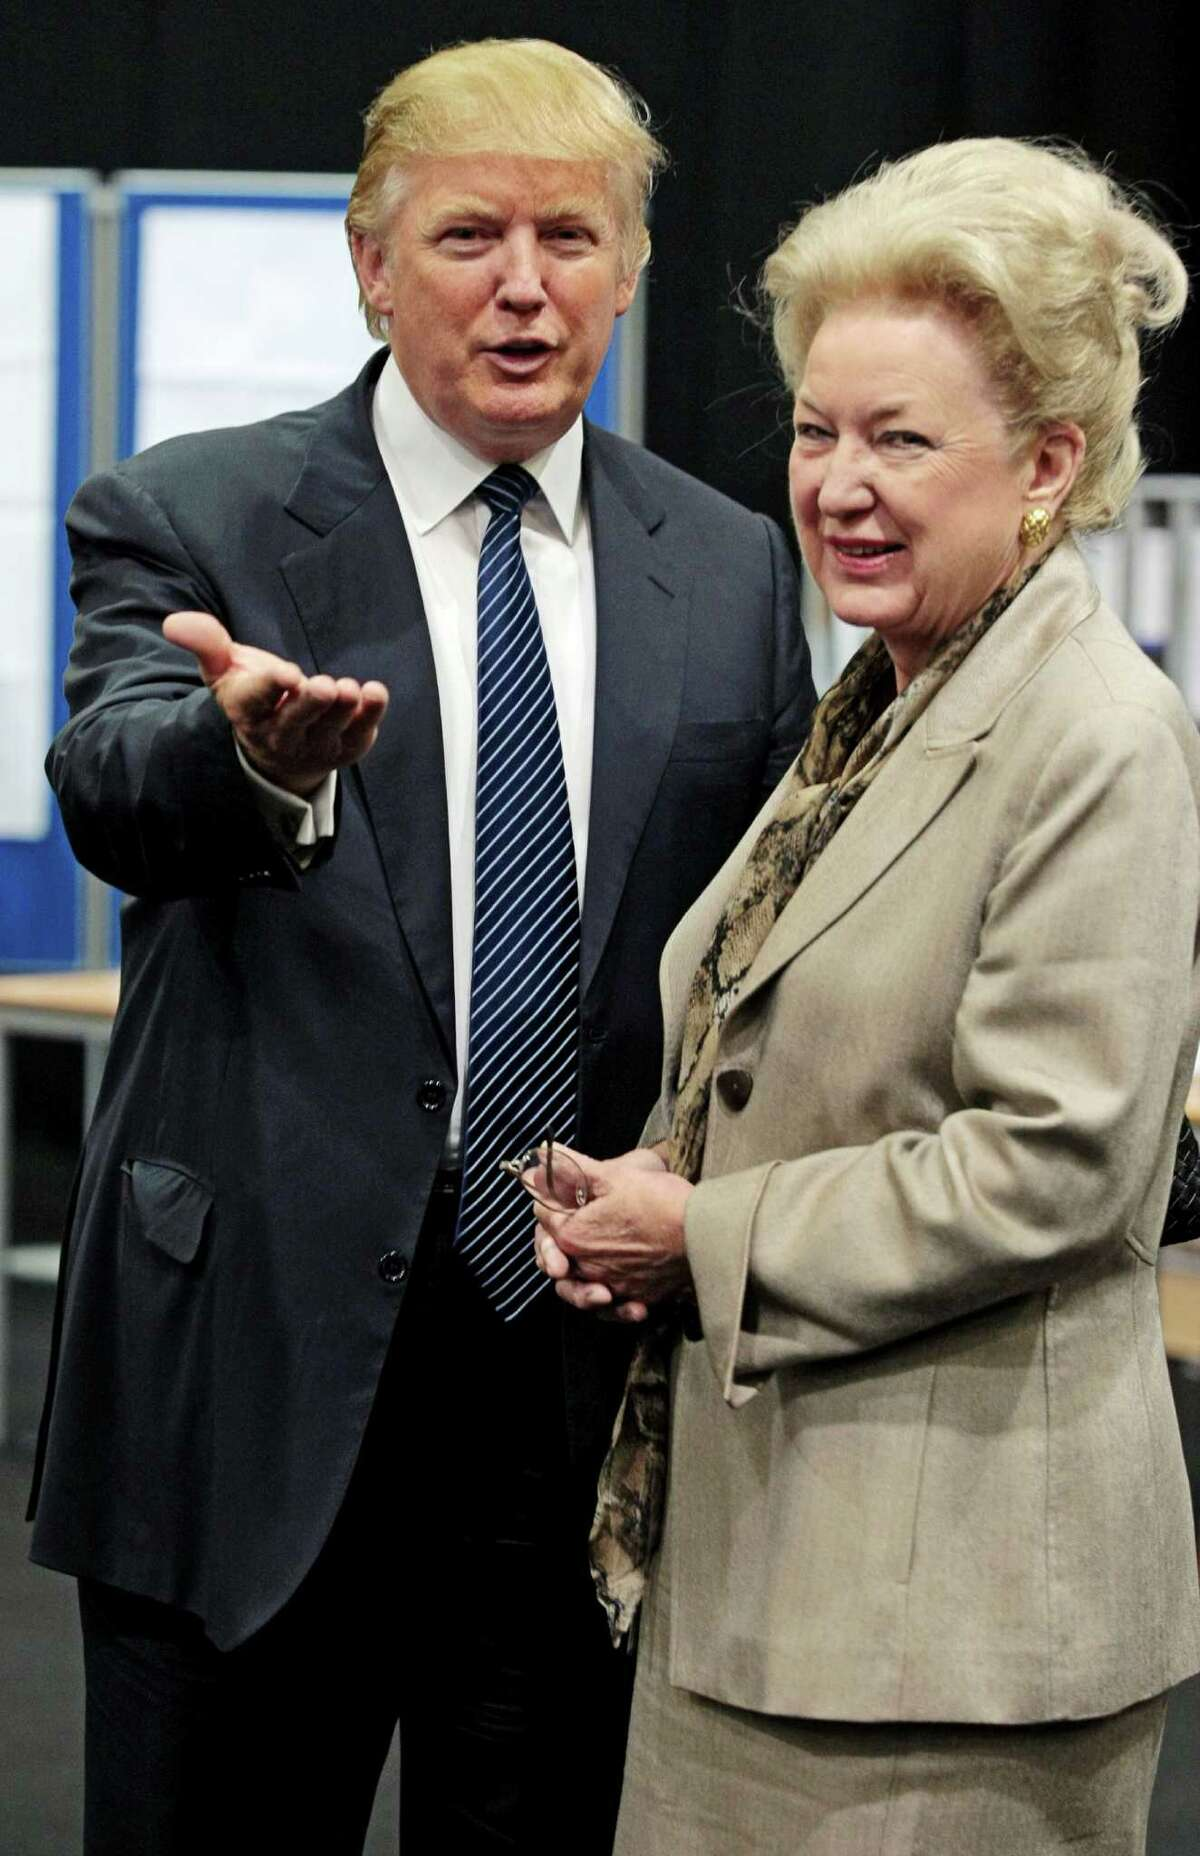 Donald Trump (L) pictured with his sister Maryanne Trump Barry at the Aberdeen Exhibition & Conference centre, Scotland in 2008. Trump Barry, the 78-year-old sister of Donald Trump, has given Fairfield University a $4 million gift.